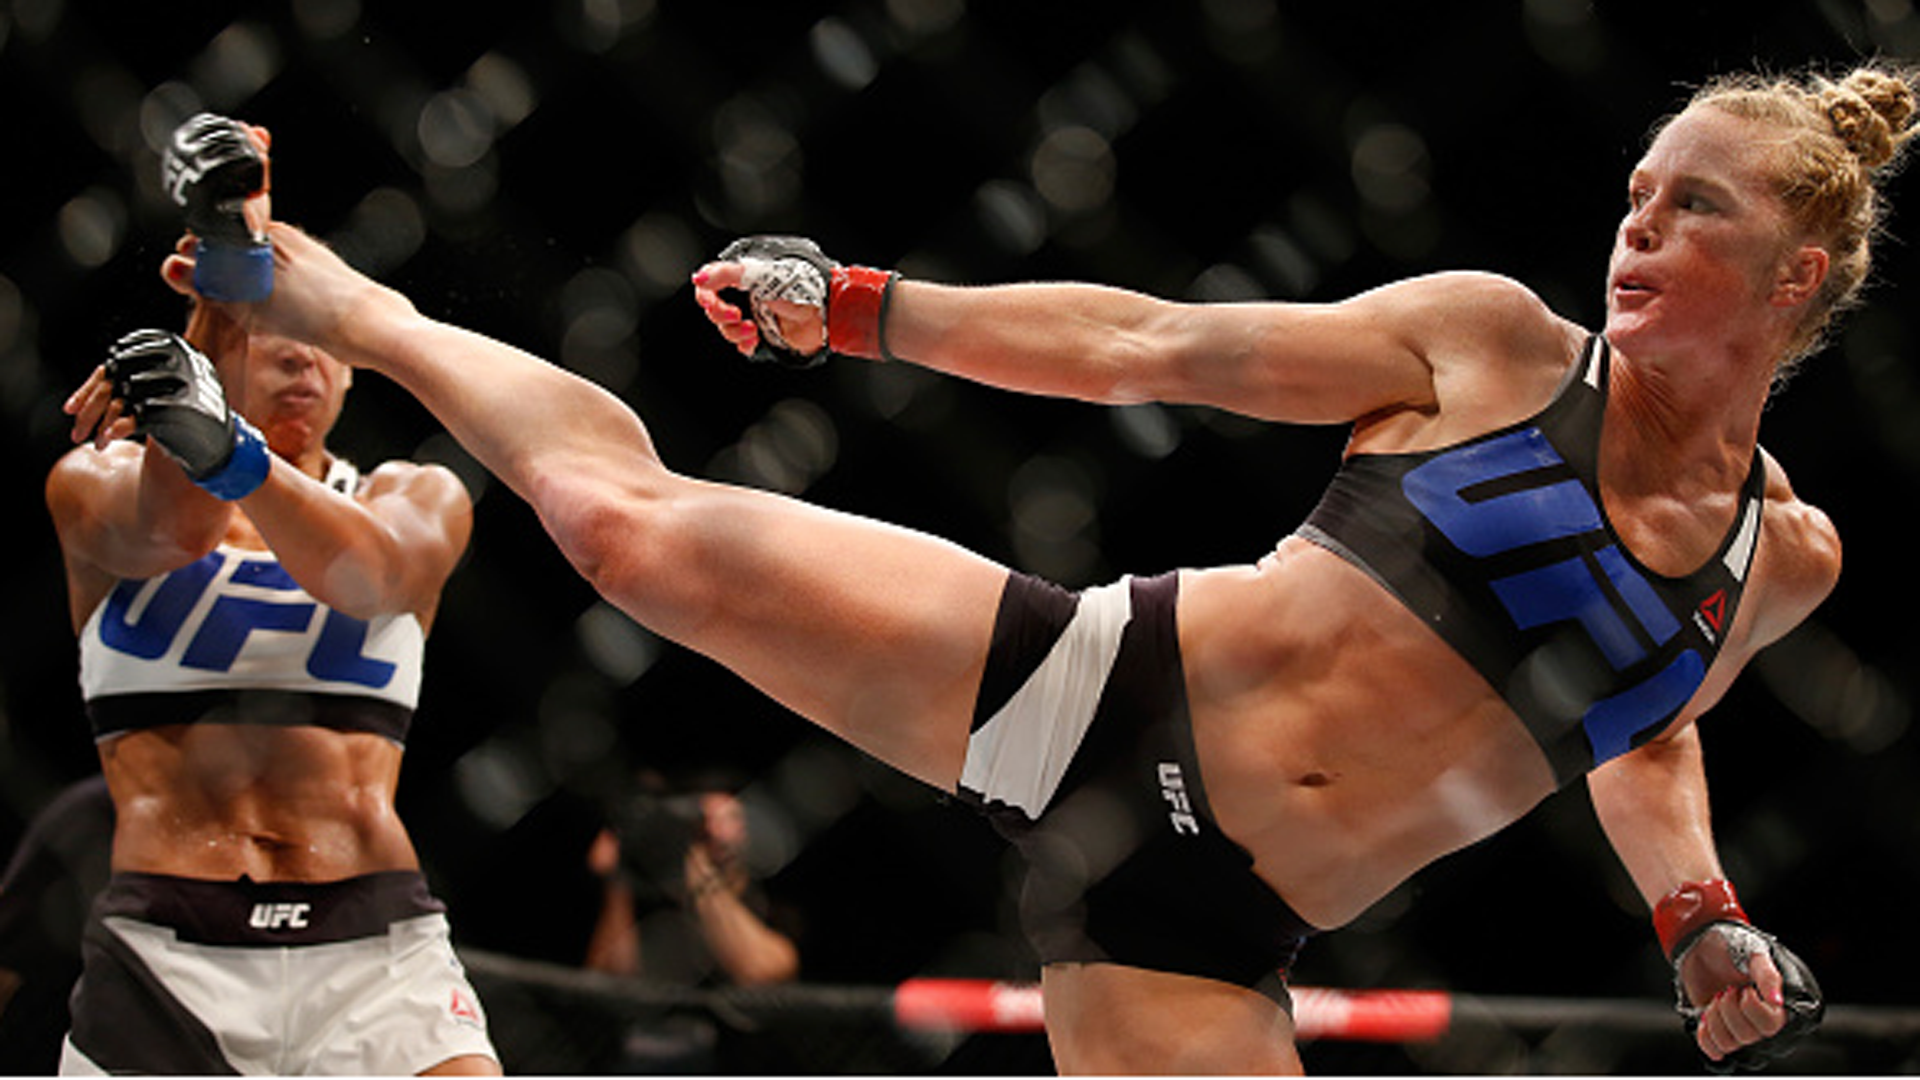 Meet Holly Holm Ronda Rouseys next opponent Sporting News 1920x1080